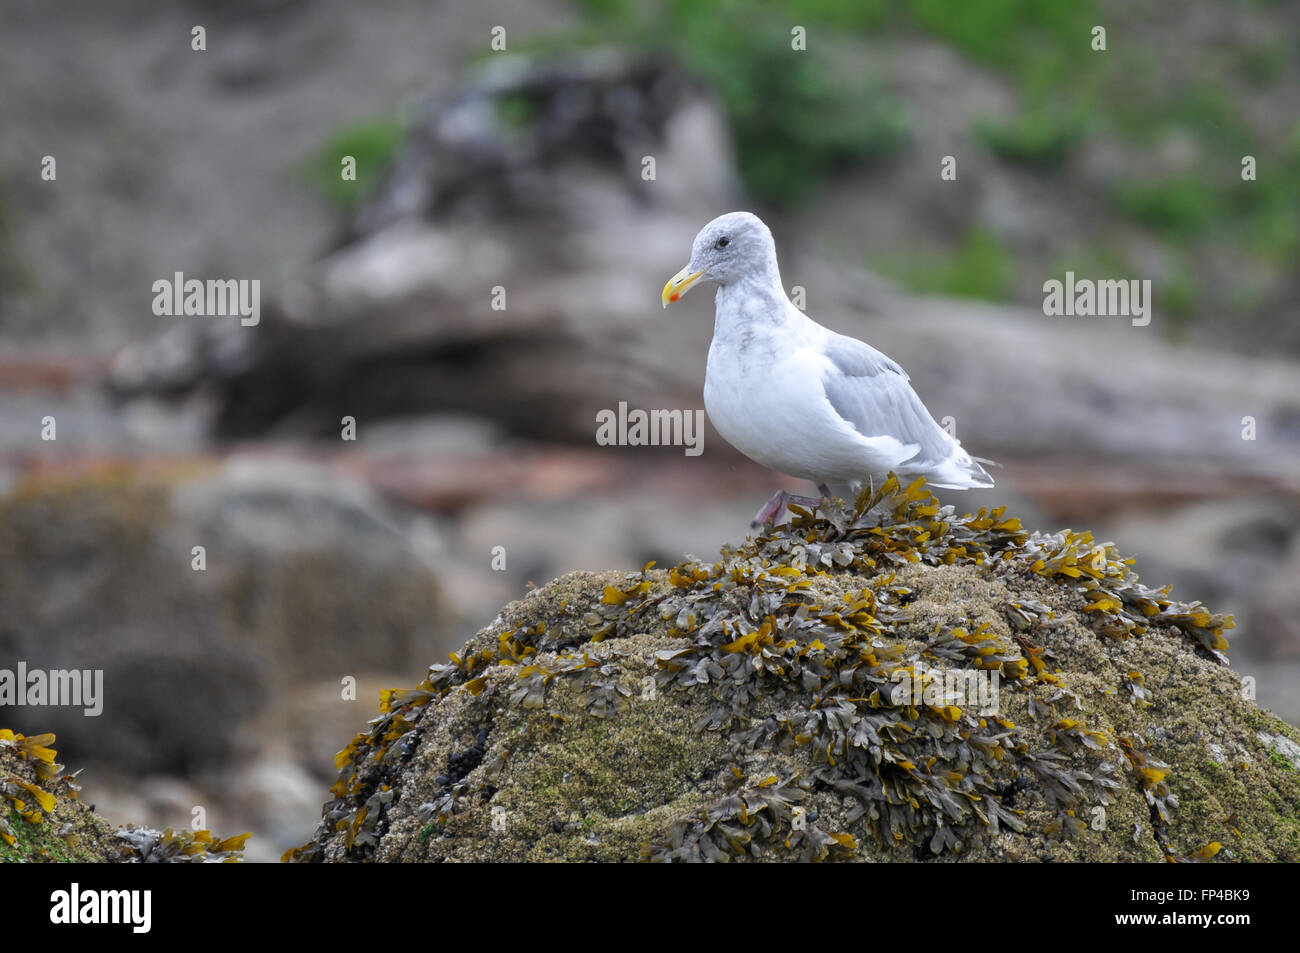 Larus glaucescens: A seagull on a rock full of seaweed - Stock Image